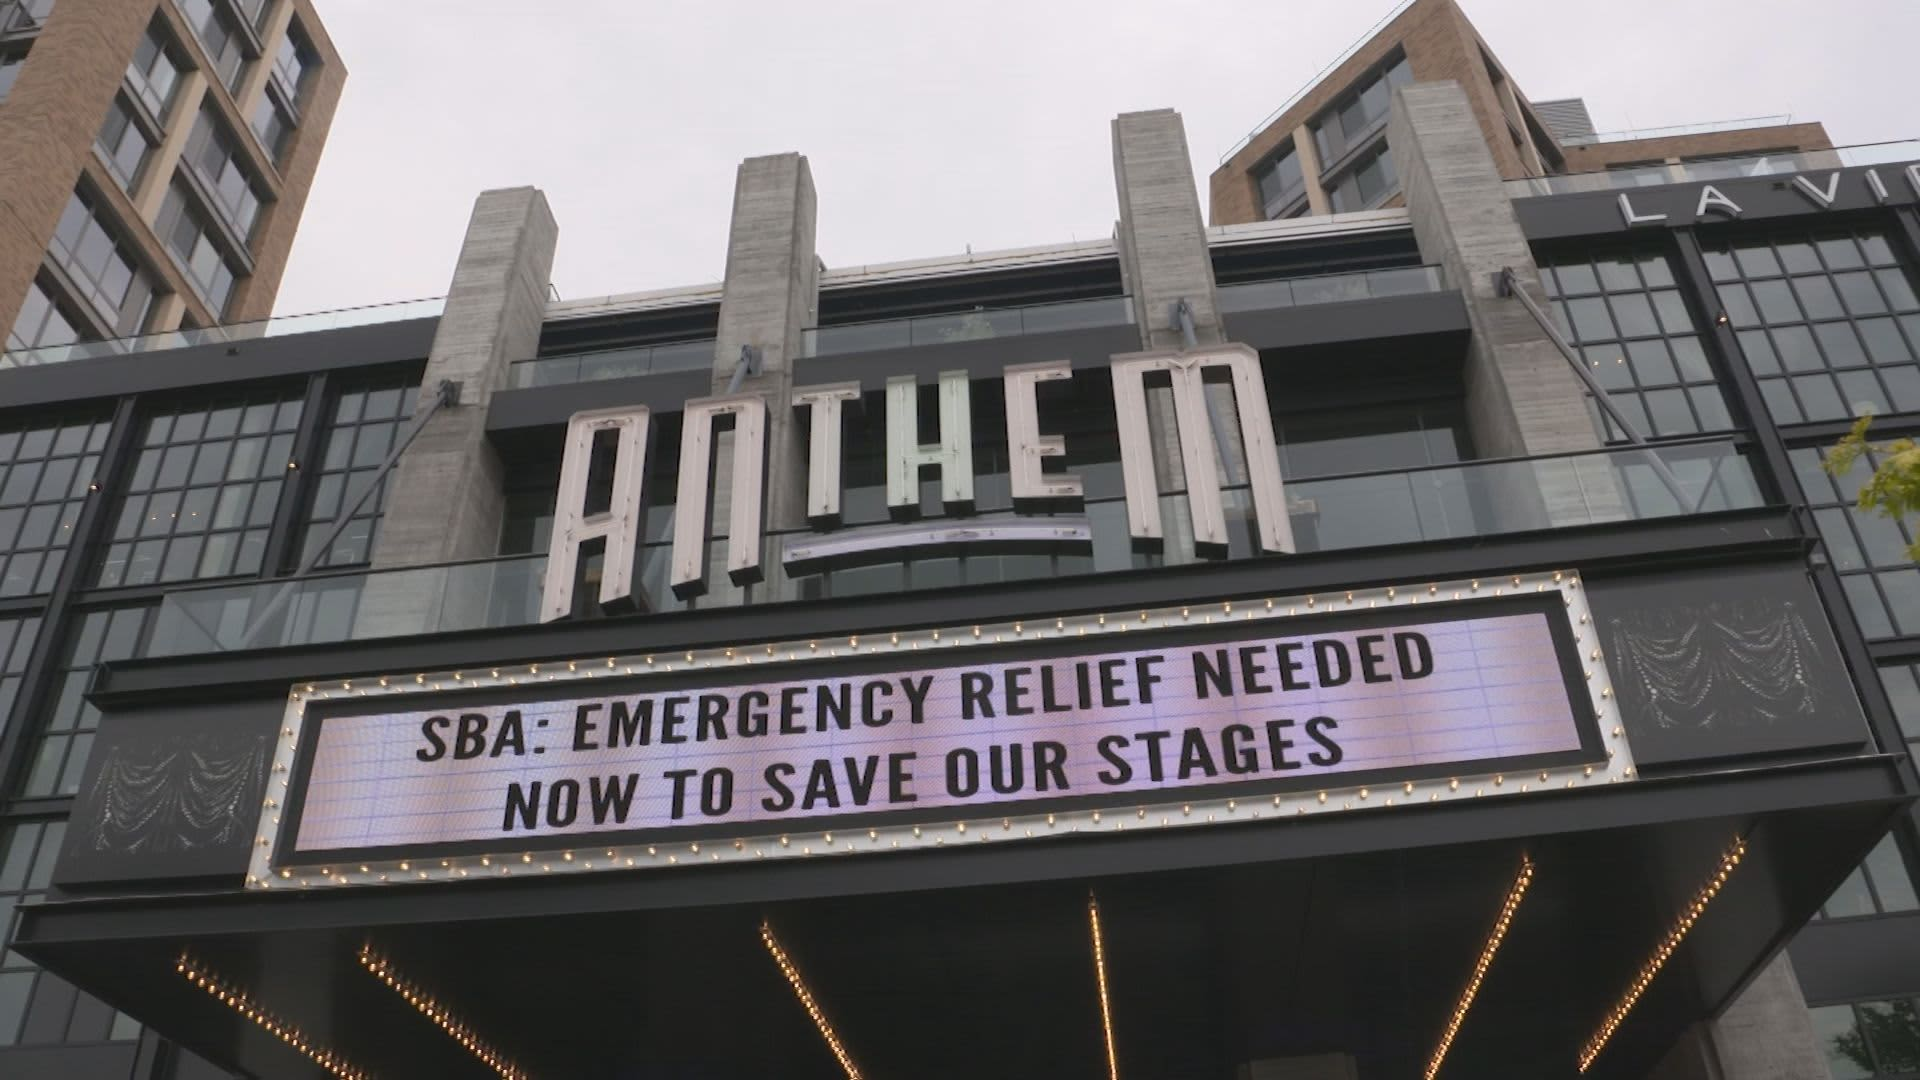 SBA to process most aid applications for music venues and theaters by early July, Sen. Hagerty says